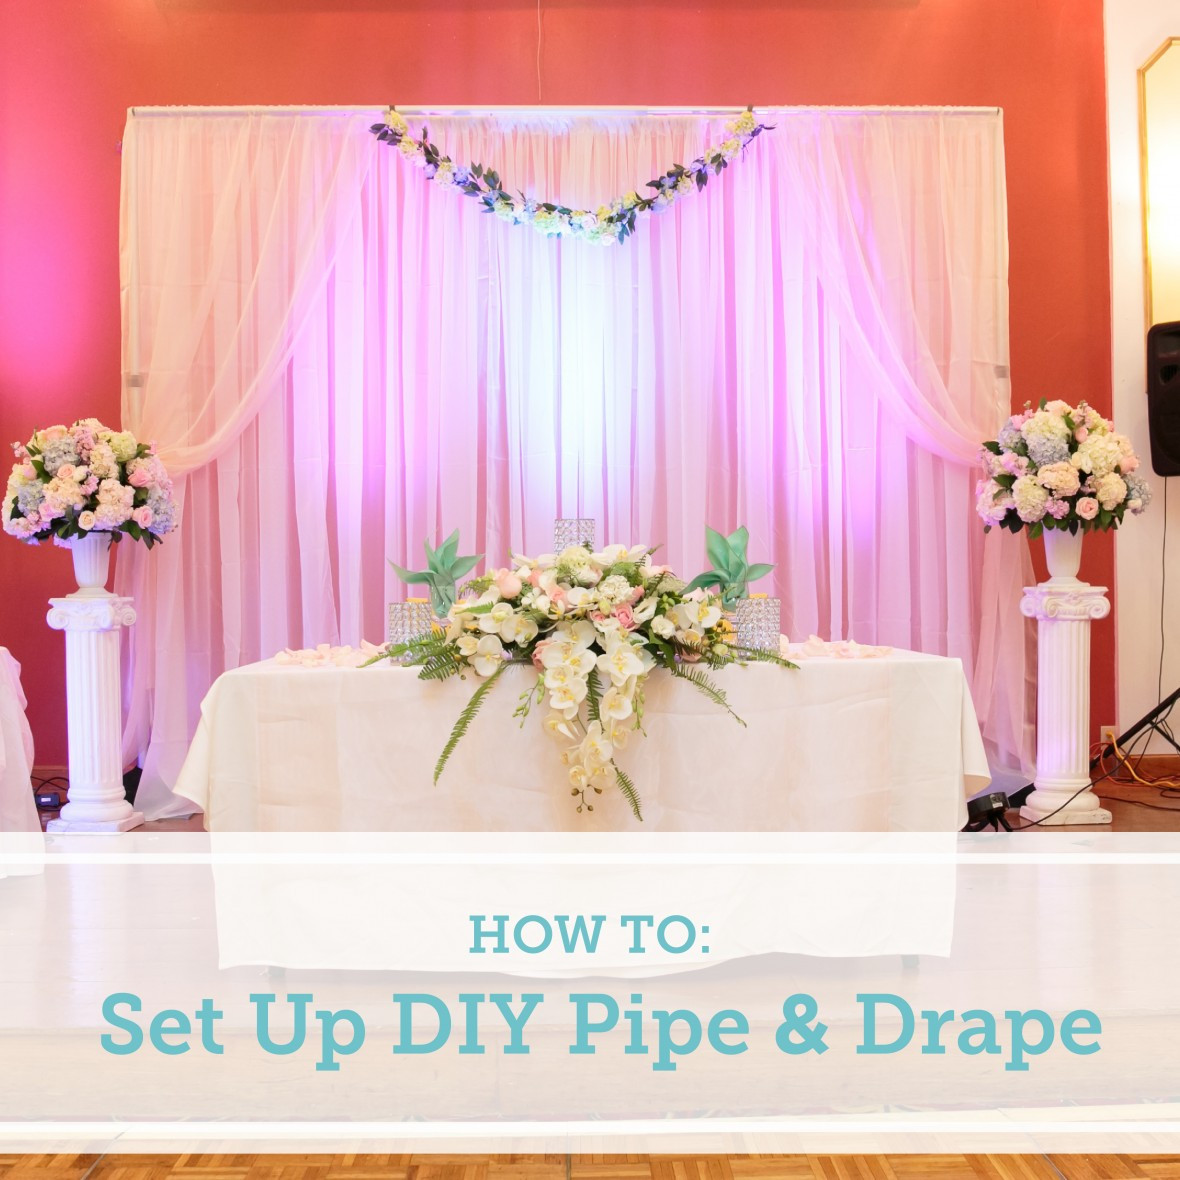 Best ideas about Wedding Backdrop Ideas DIY . Save or Pin How To Set Up a DIY Wedding Backdrop Now.